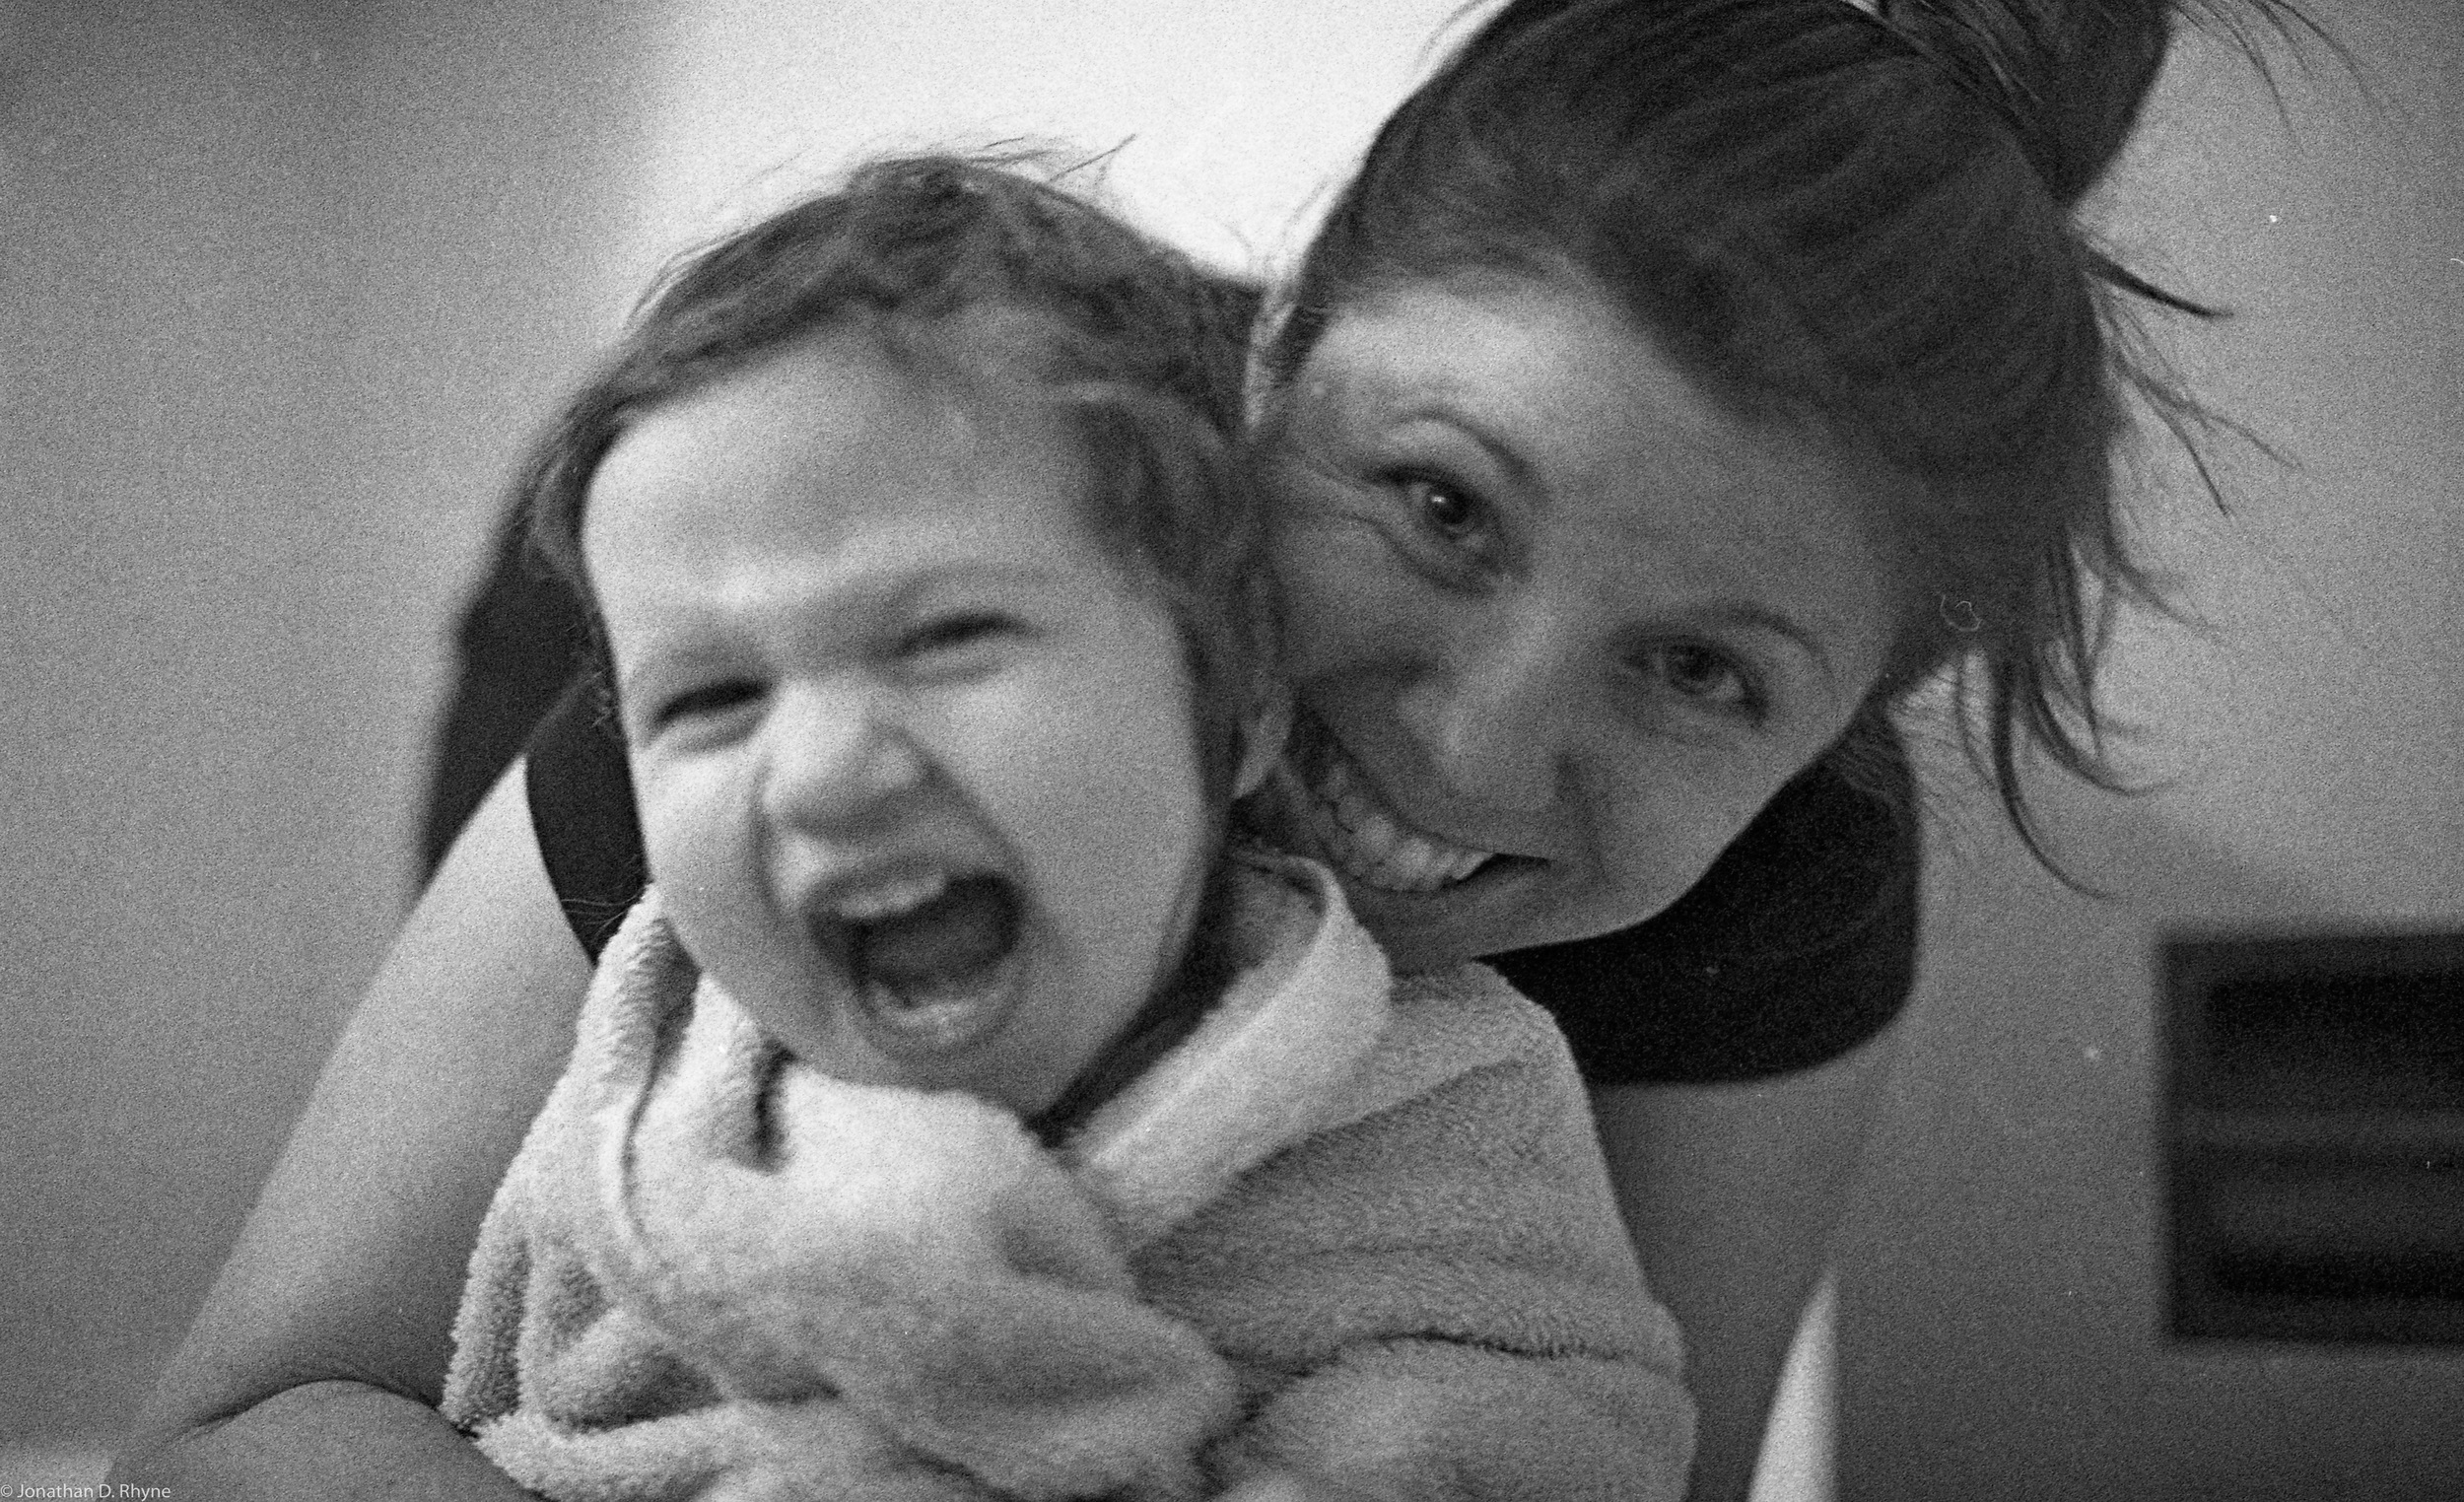 Mother Daughter.  Raleigh, NC - Nikon FM2 - Kodak Tri-X 400